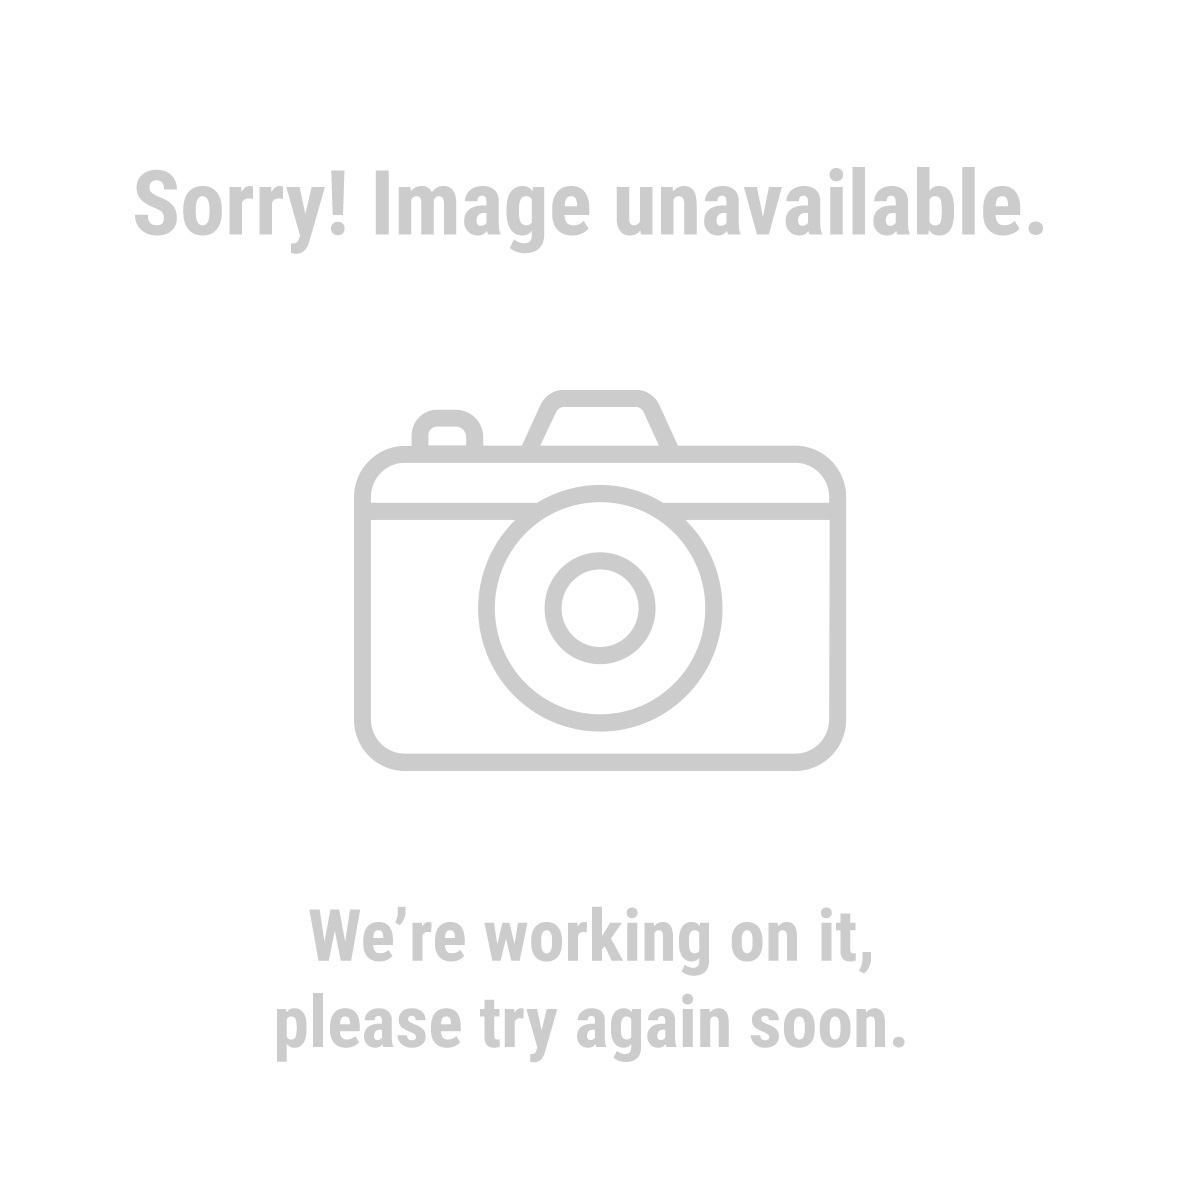 worksheet Tape Measure Fractions similiar 19 32 on a tape measure keywords fractions x 1 quikfind measure